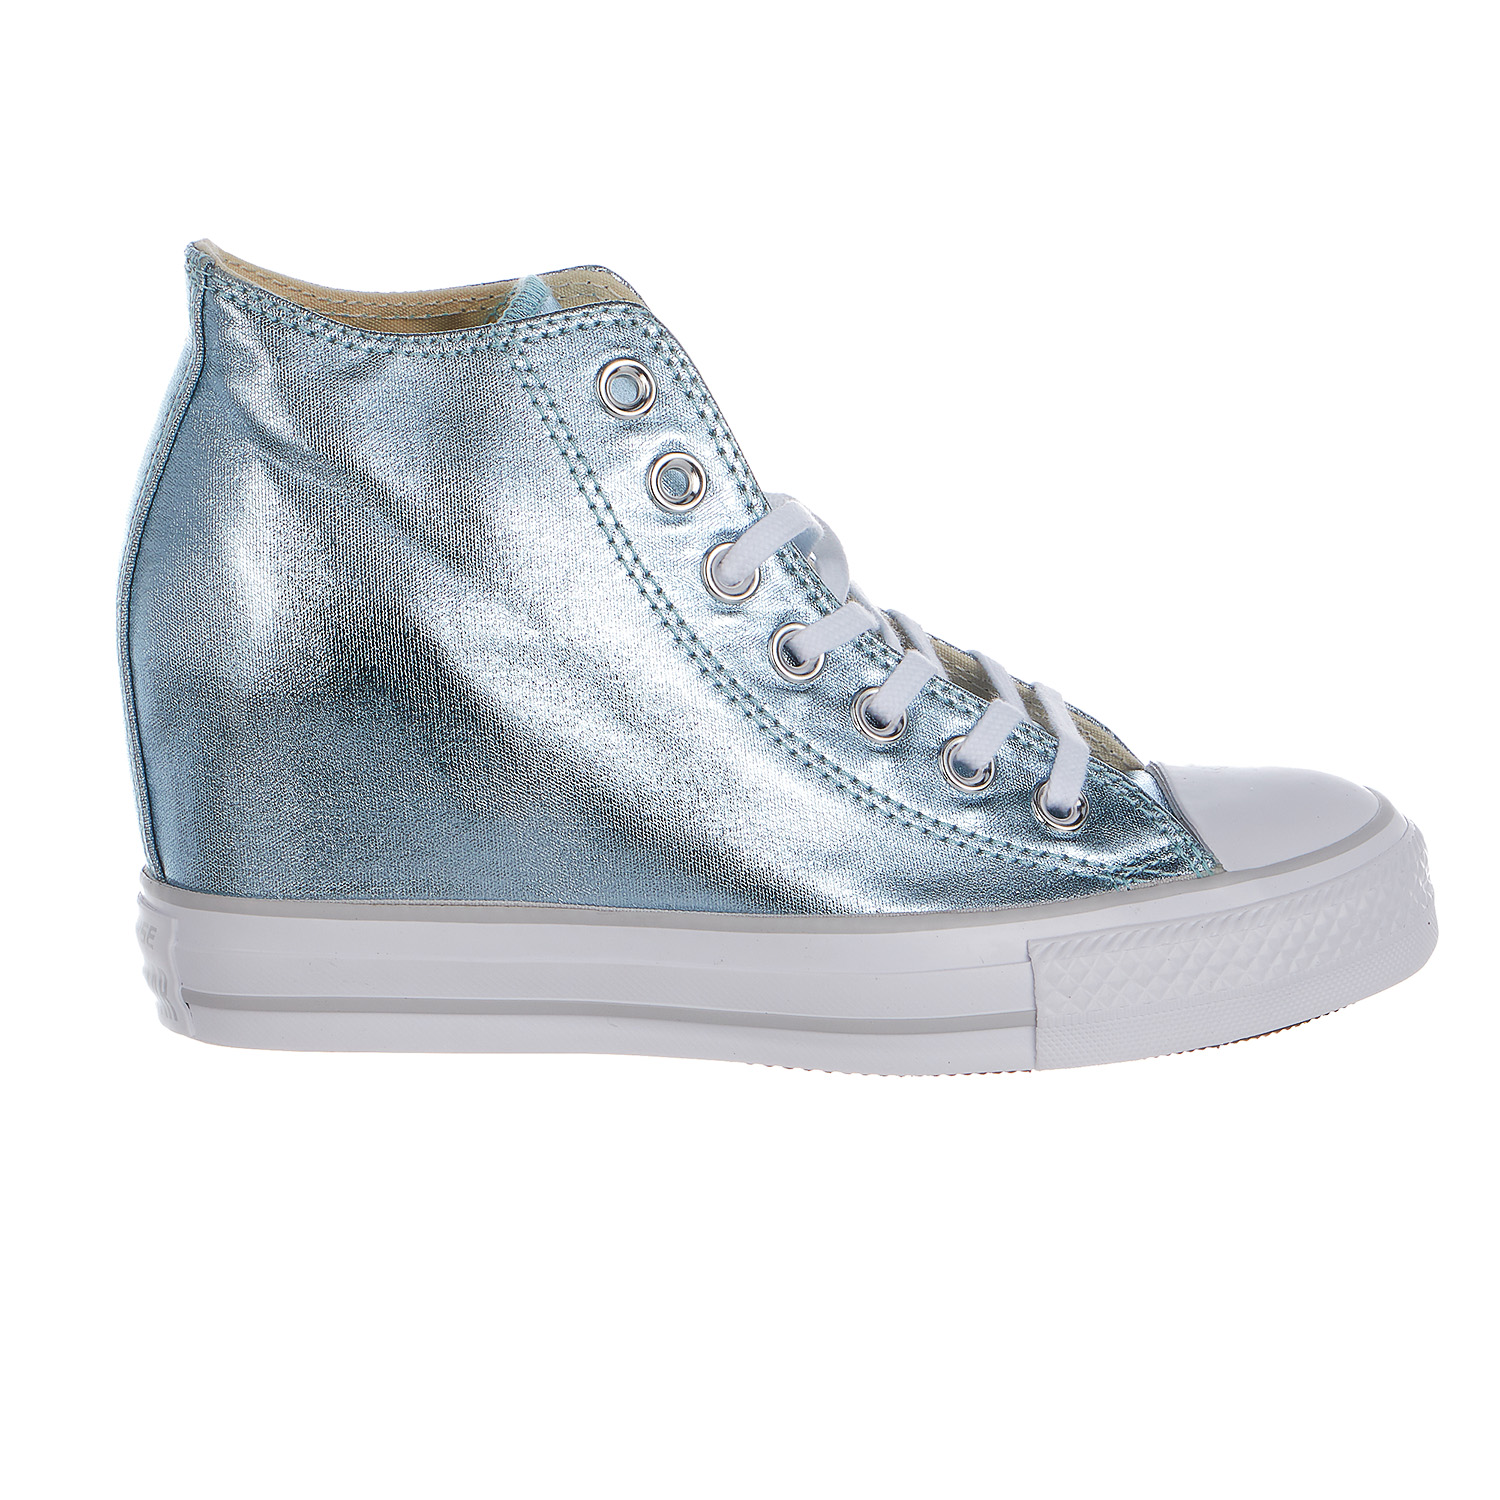 b23d0b06169b1d ... promo code converse chuck taylor all star lux mid wedge shoes womens  586ca 2e927